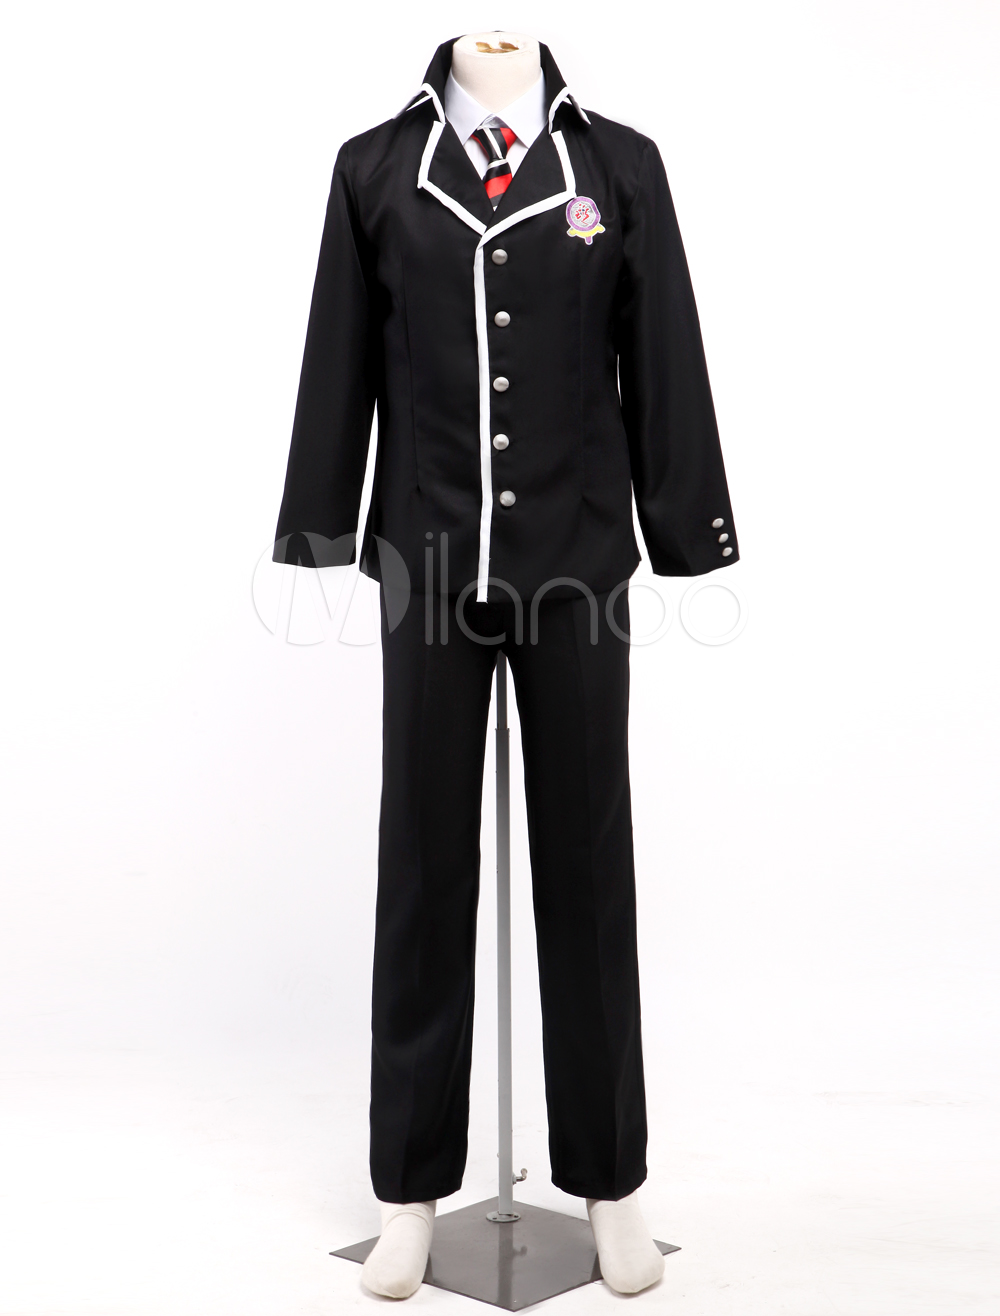 Ao no Exorcist Okumura Rin School Uniform Cosplay Costume Halloween